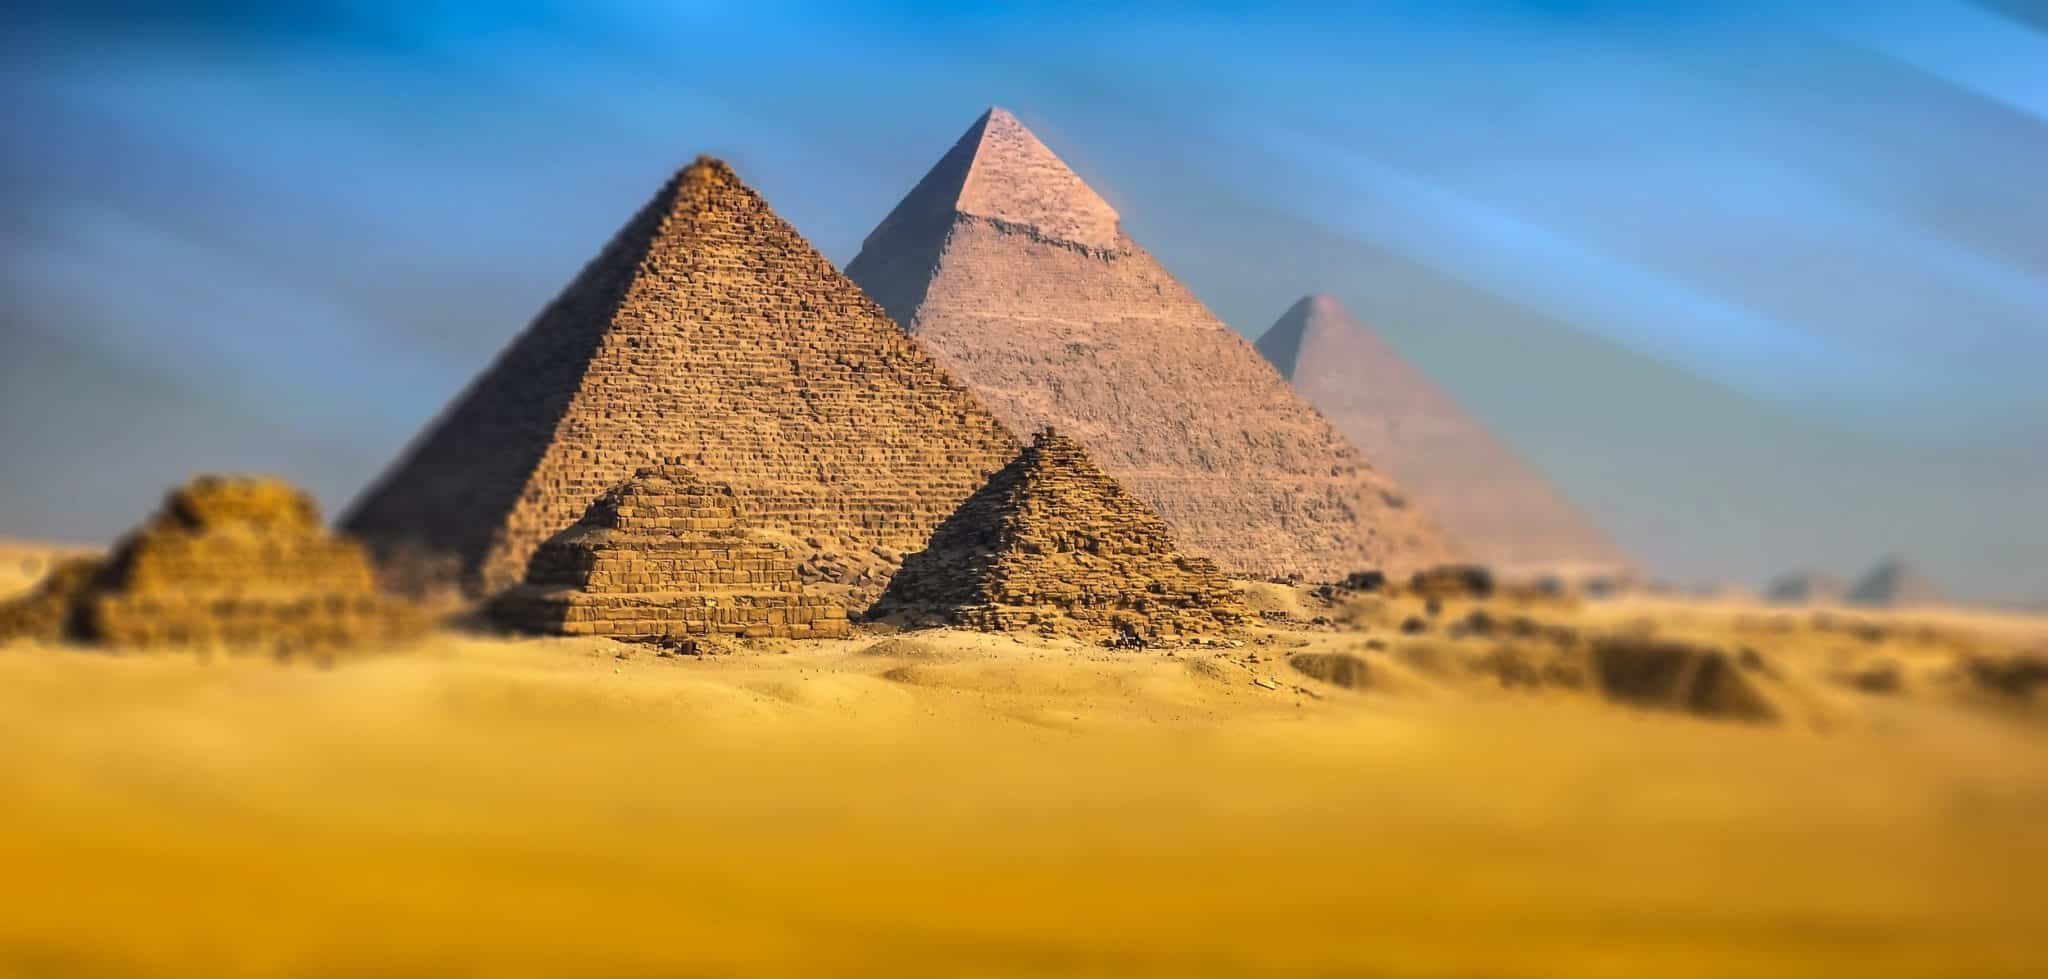 Full View of the Pyramids of Giza